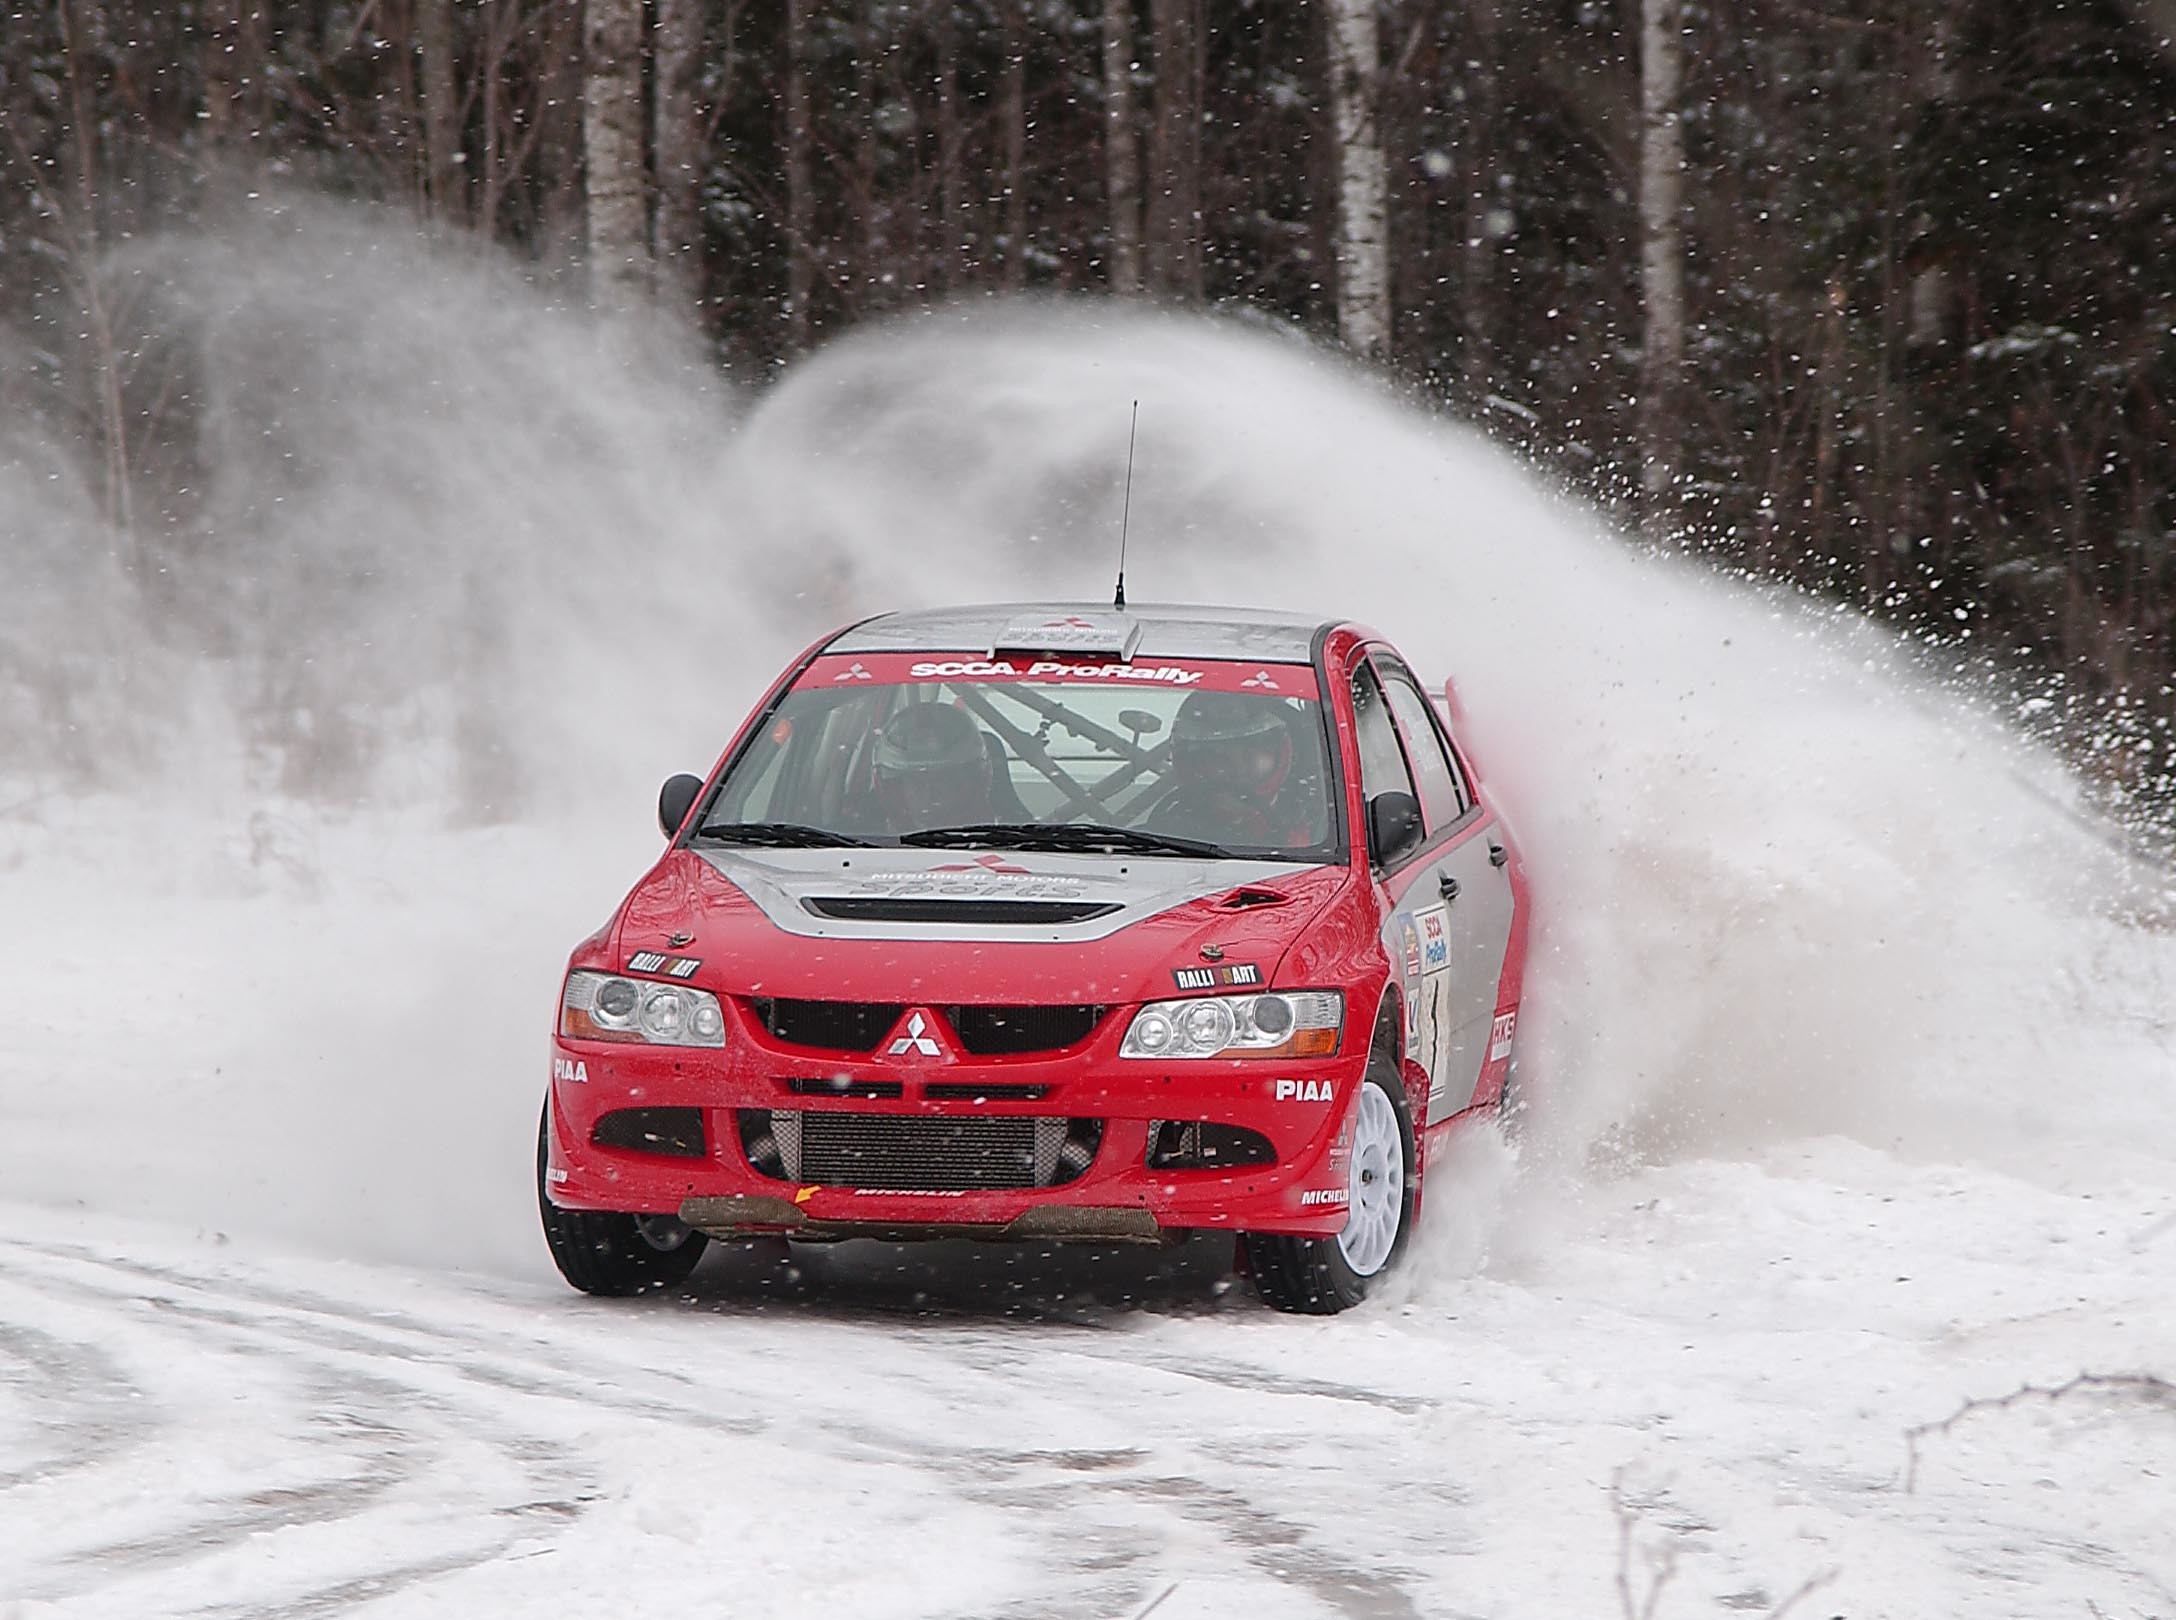 snow cars Mitsubishi rally HD Wallpaper